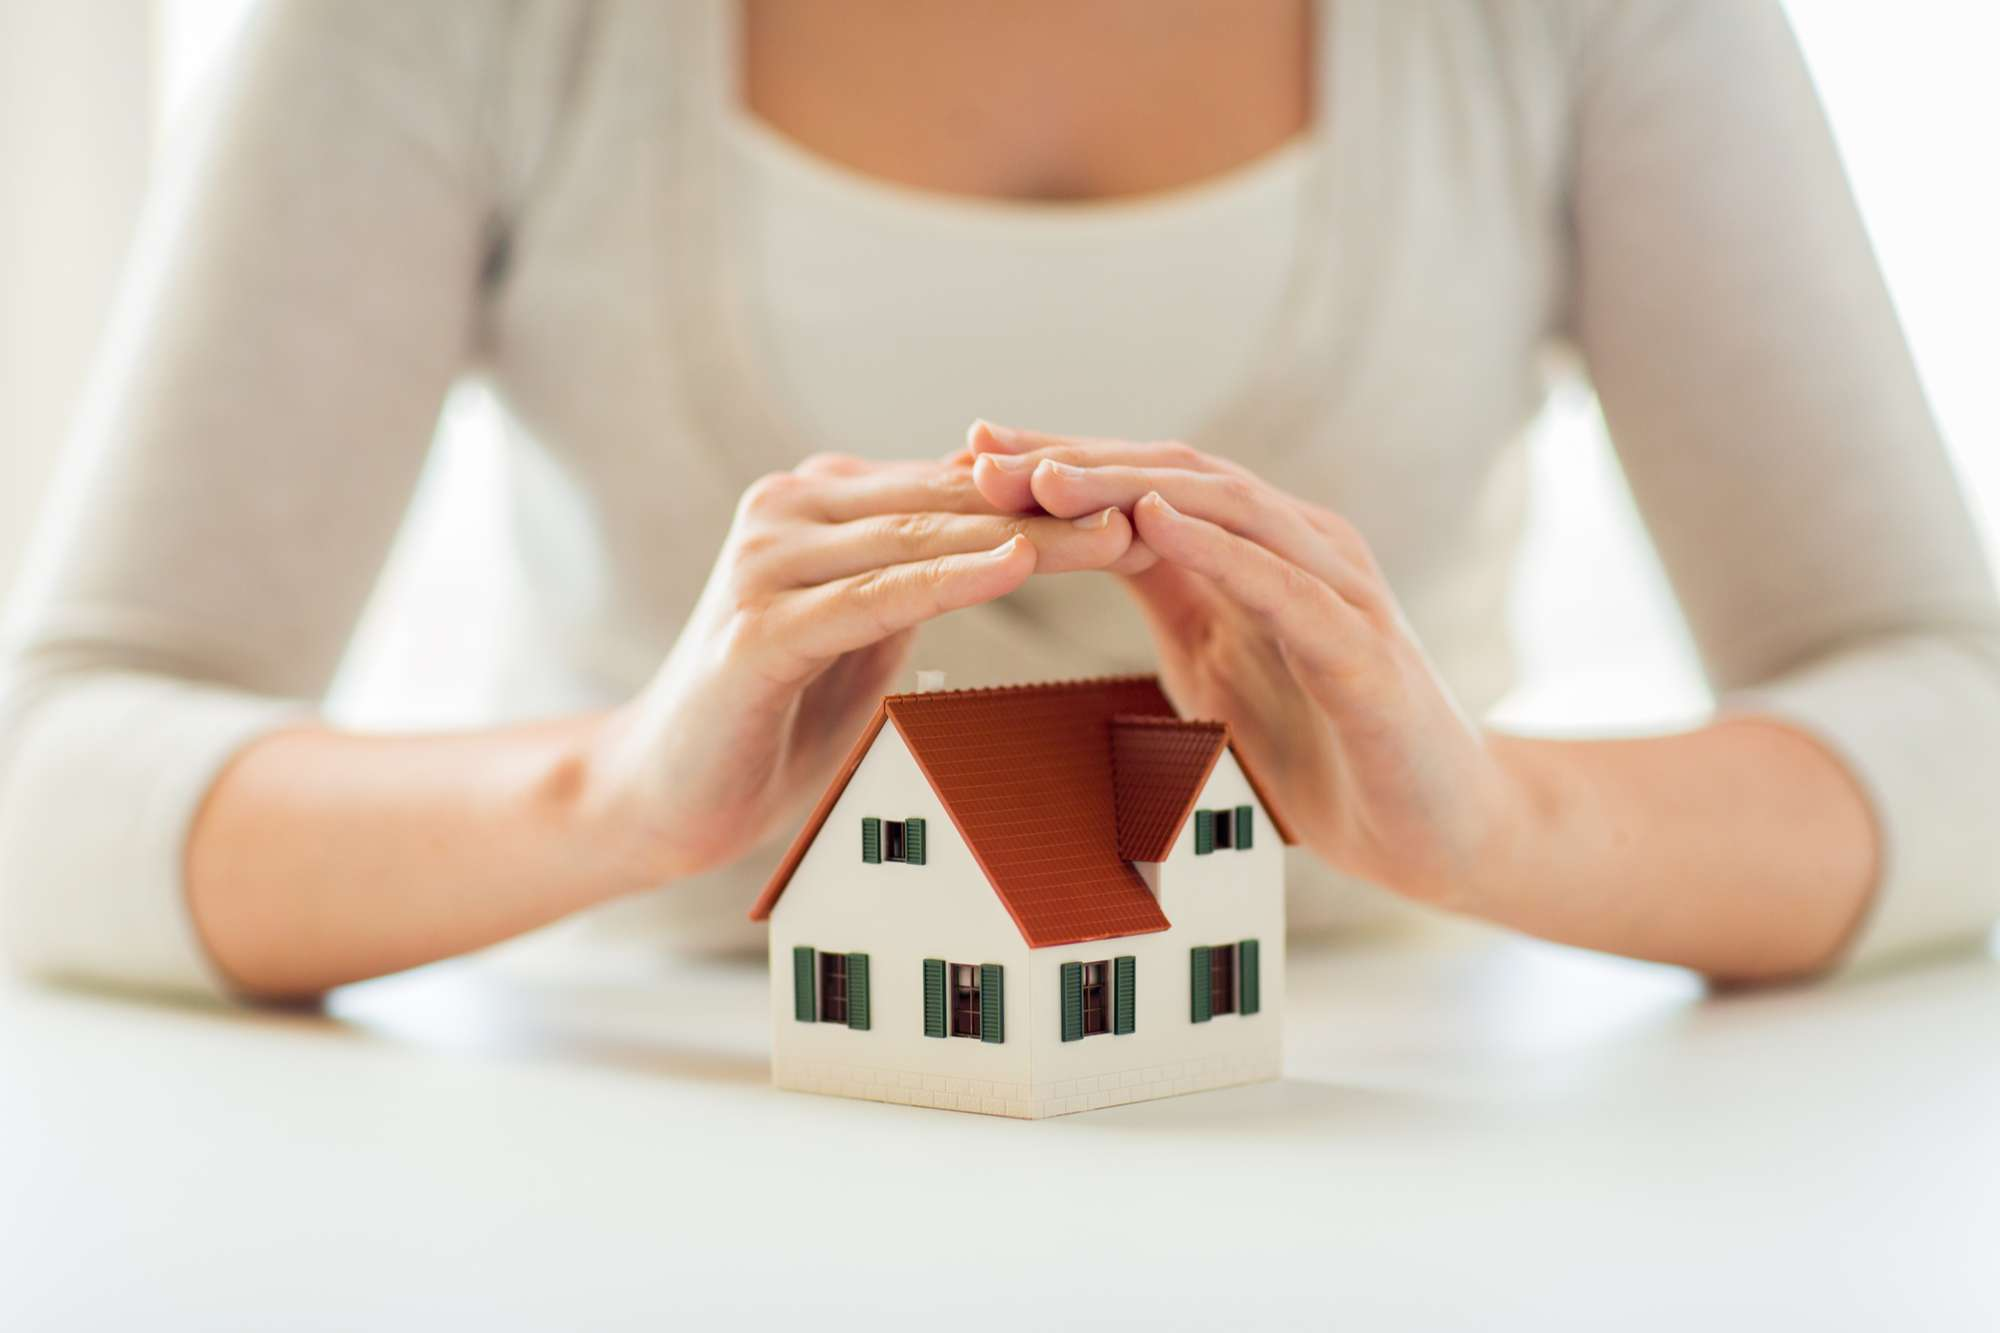 3. Strategies to Protect Your Inhabited Properties